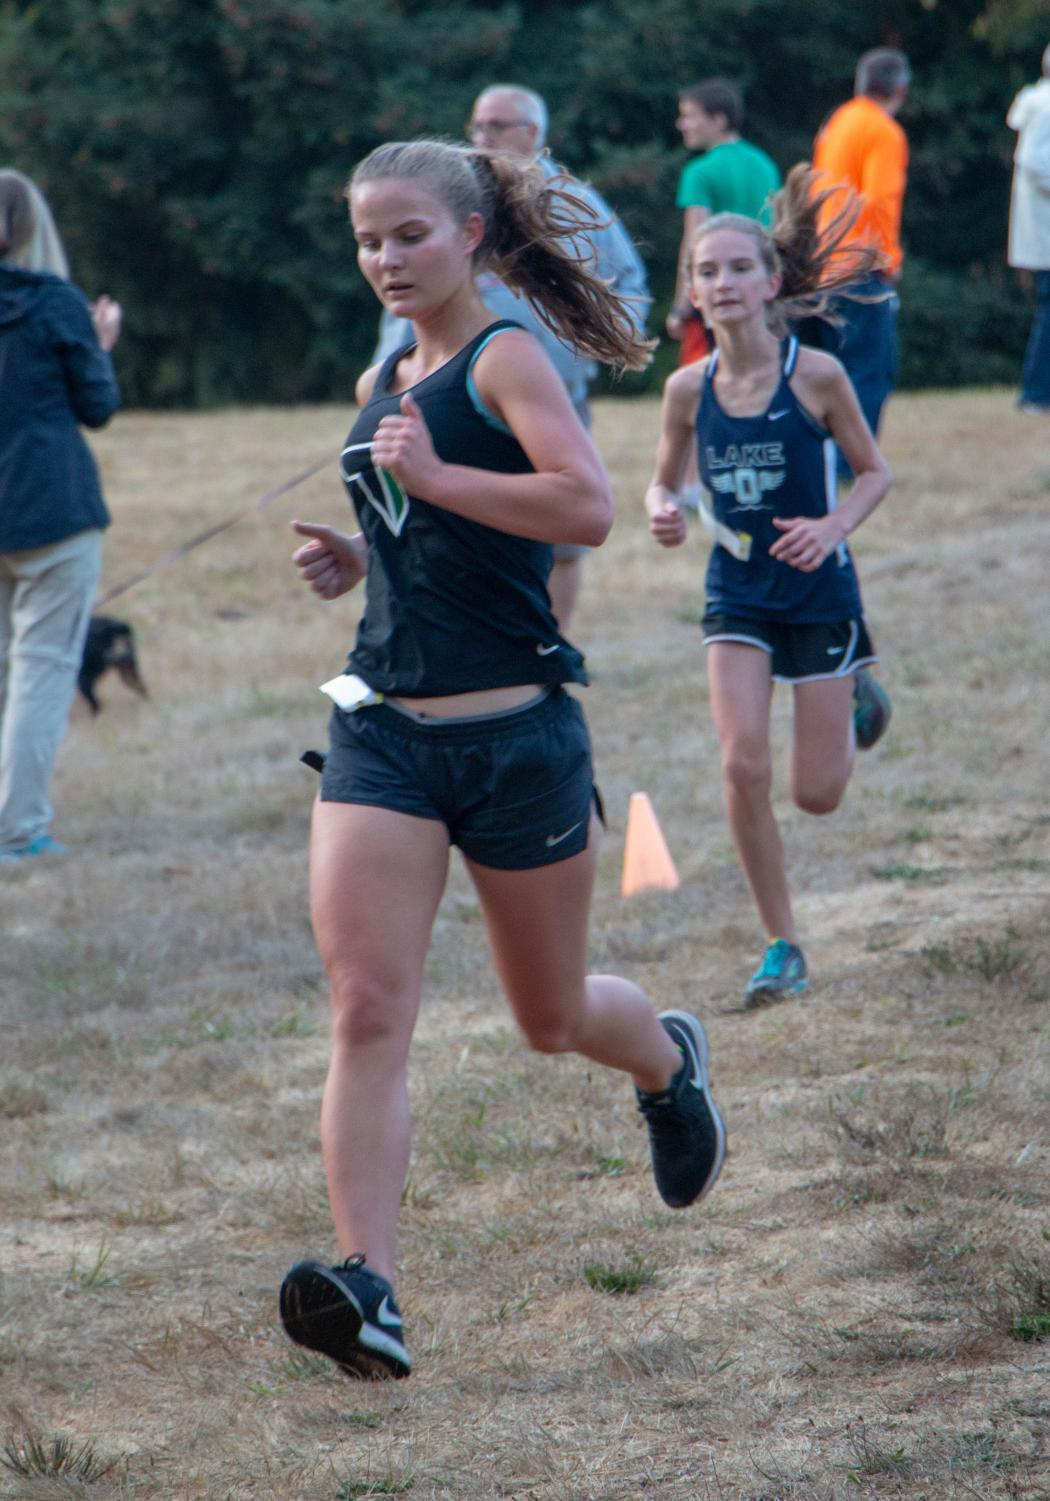 Senior Rebecca Christianson looks forward to the season. She finished 17th in 23:12.8 at the Sept. 12 meet at Canby.